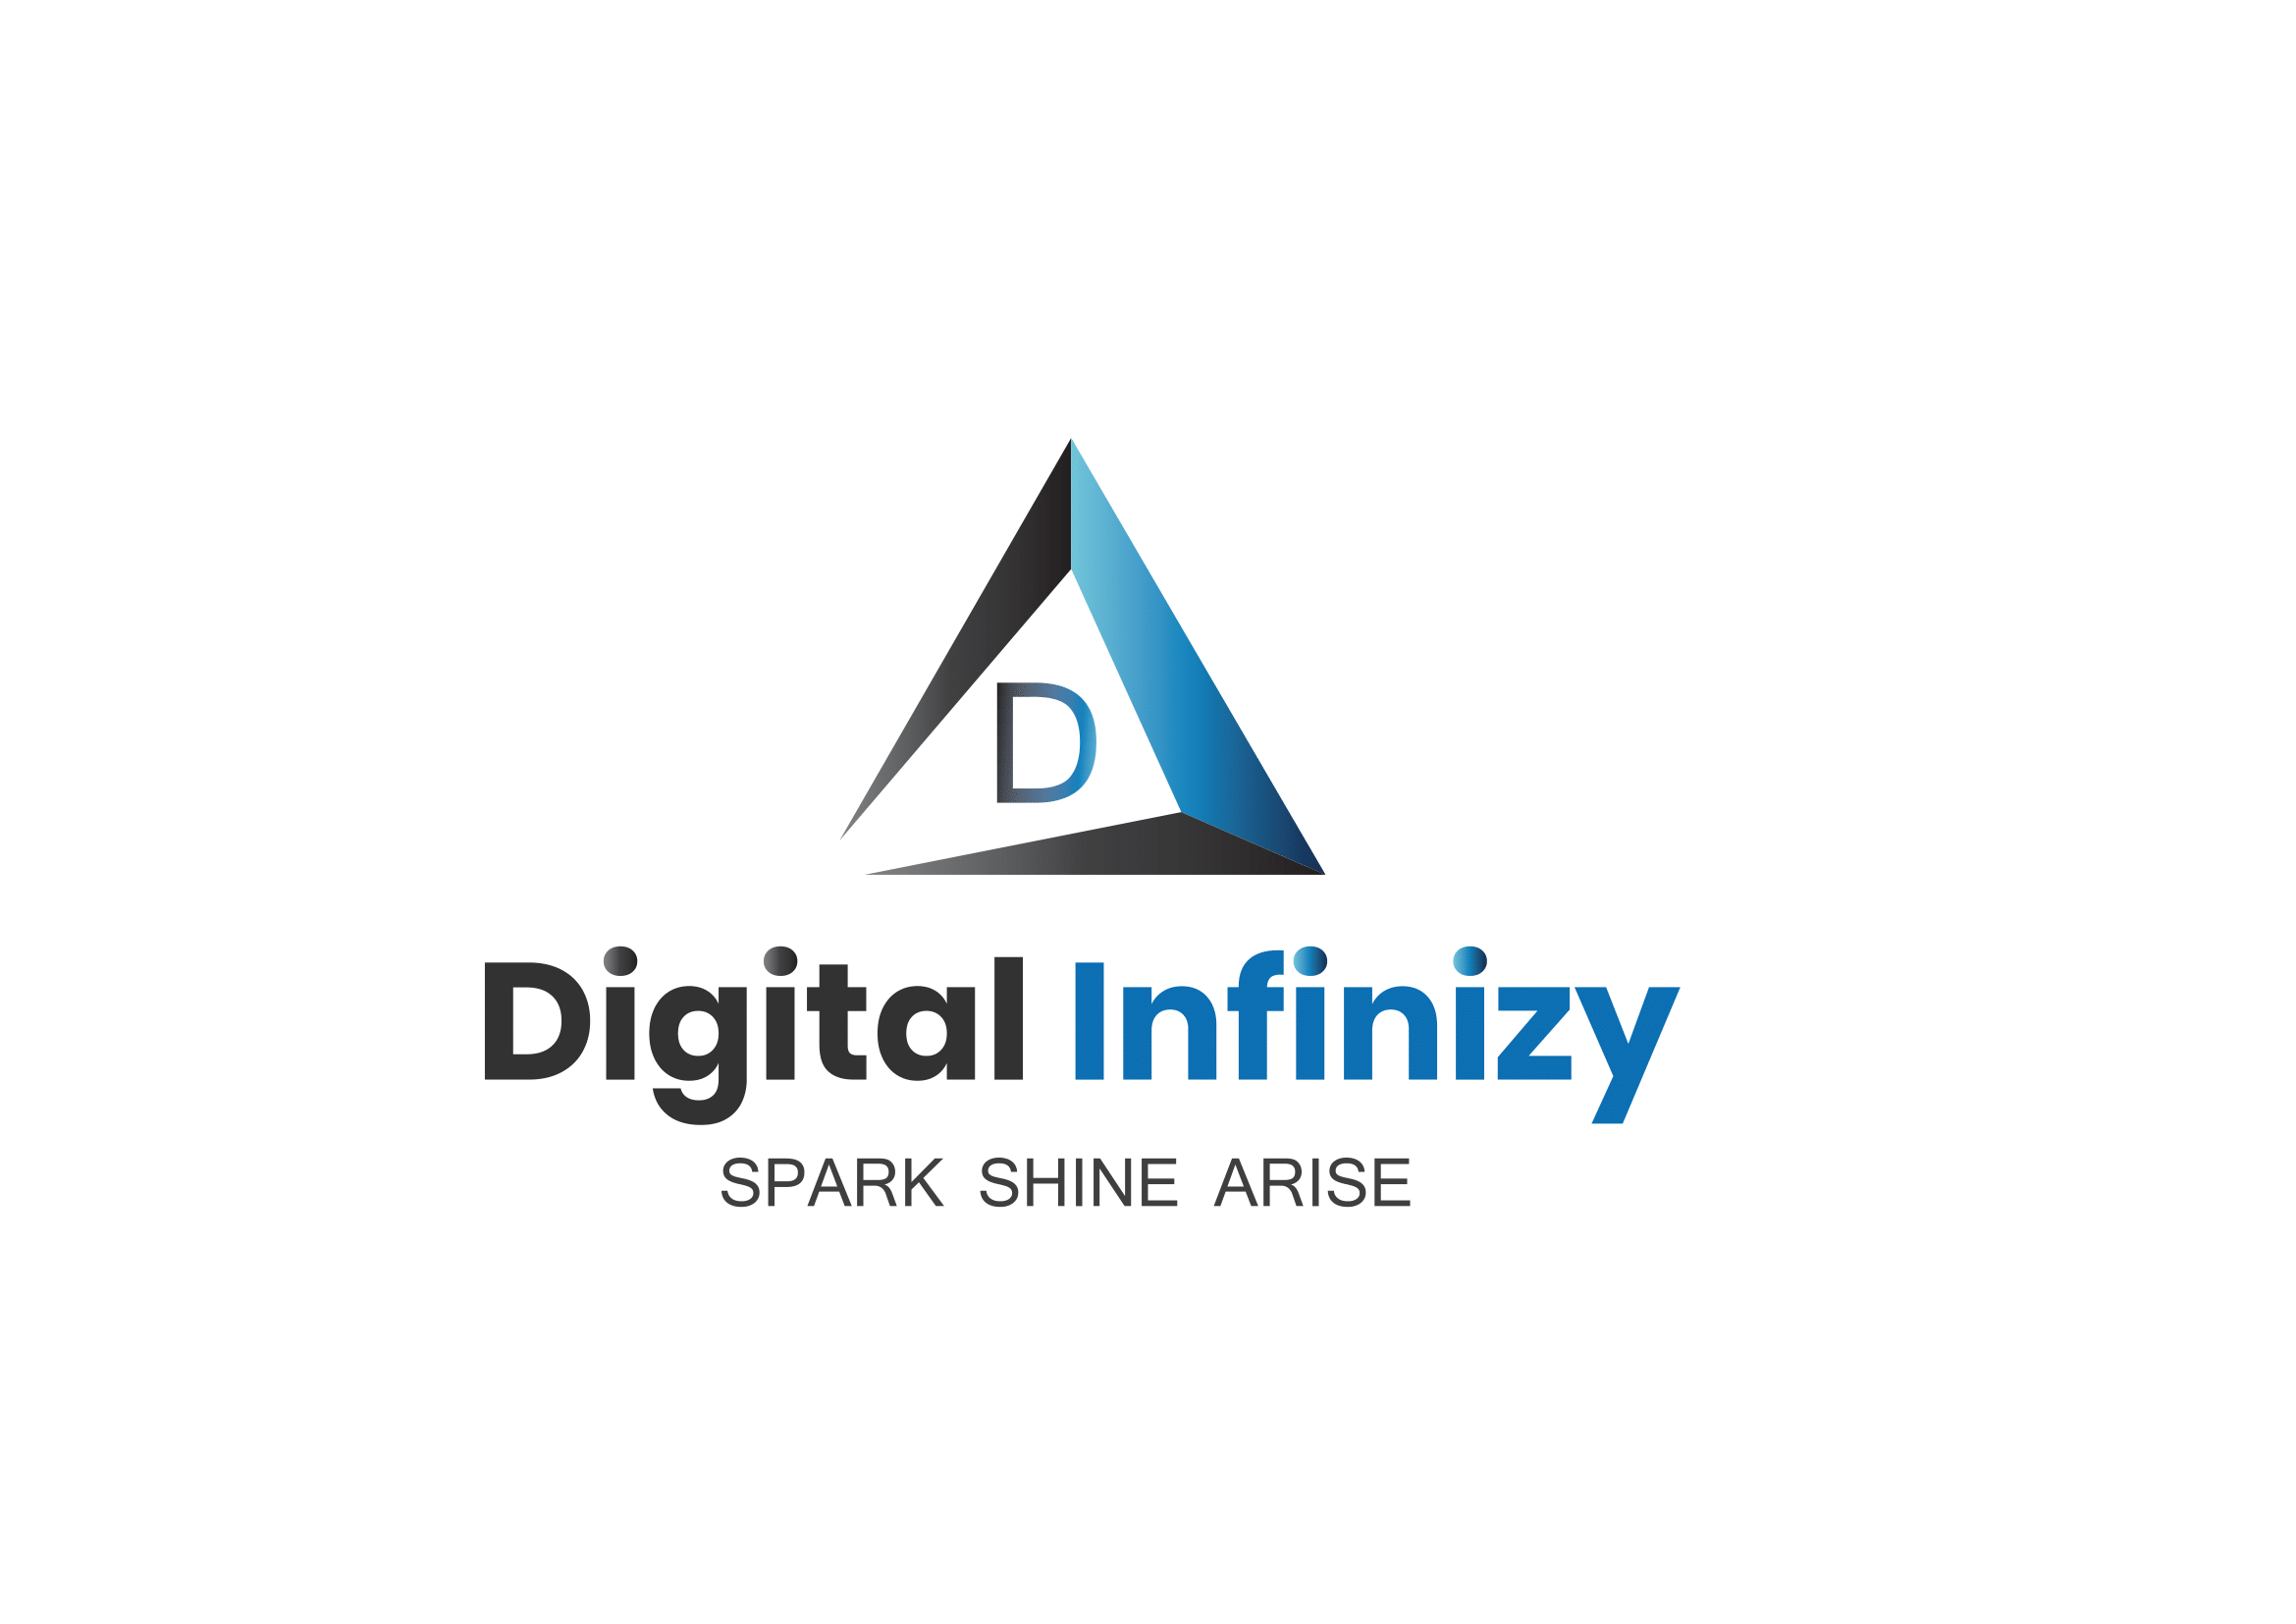 Digital Infinizy Bangalore